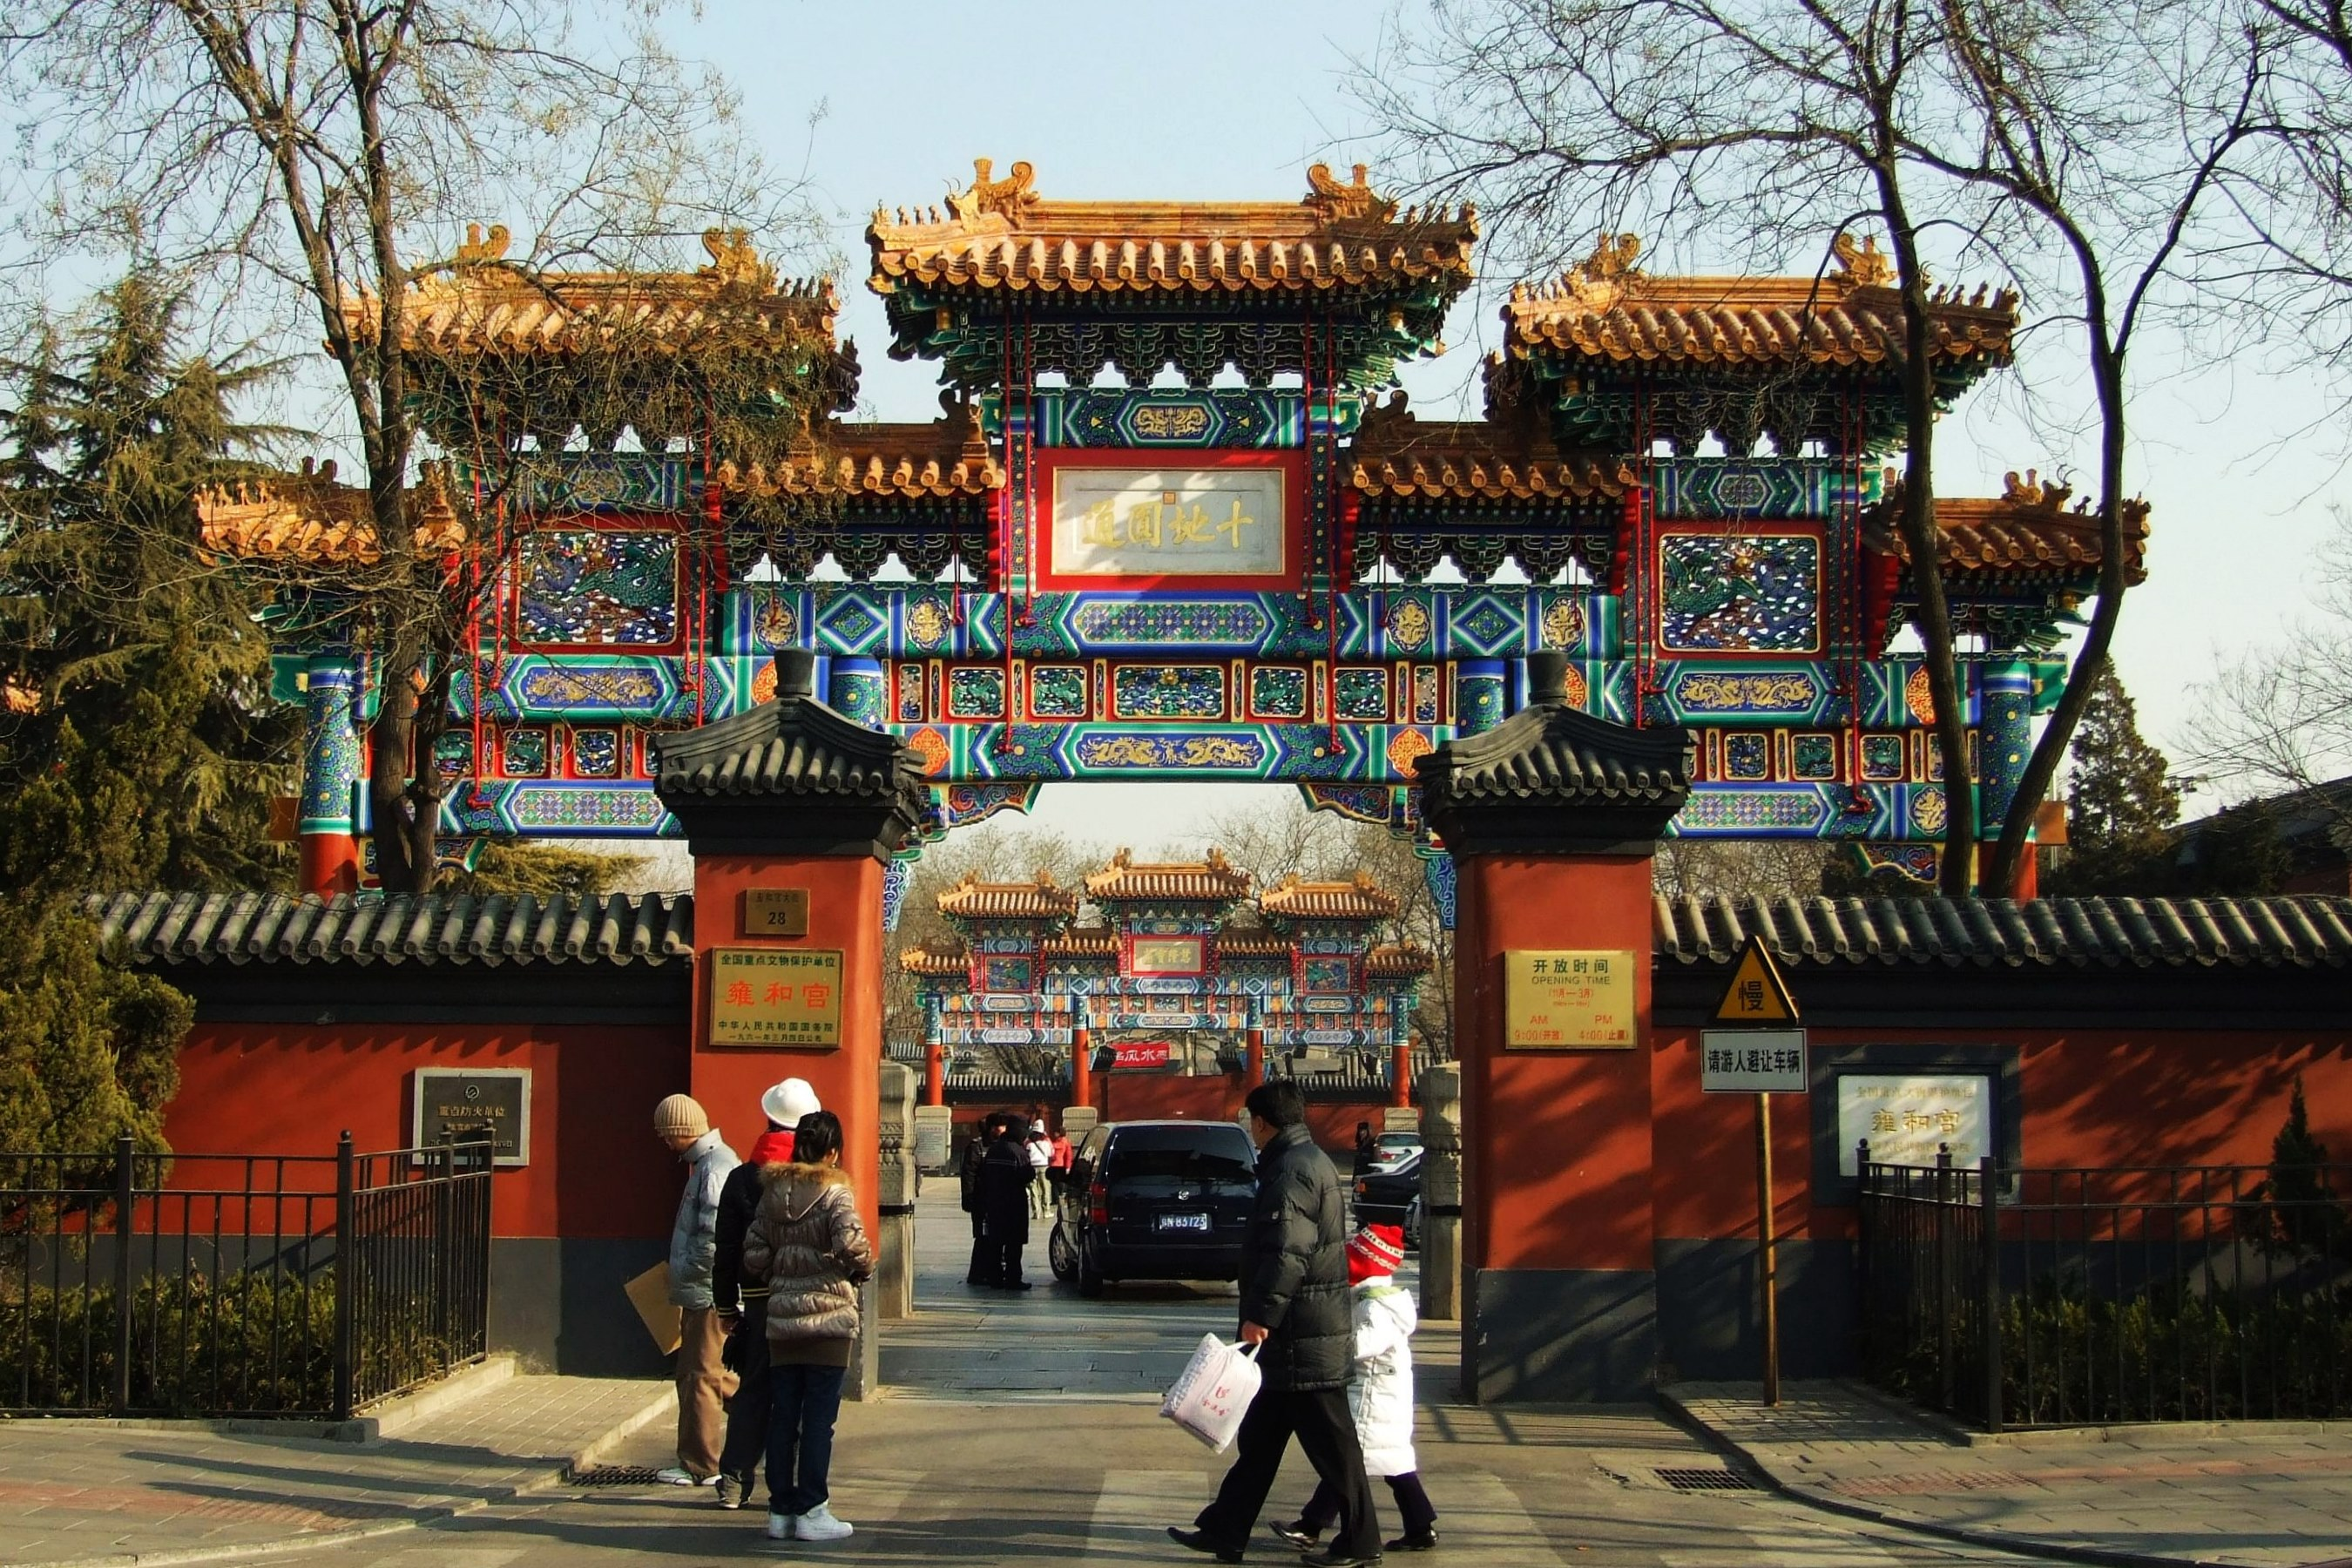 https://upload.wikimedia.org/wikipedia/commons/0/05/Yonghe_Temple_entrance.jpg